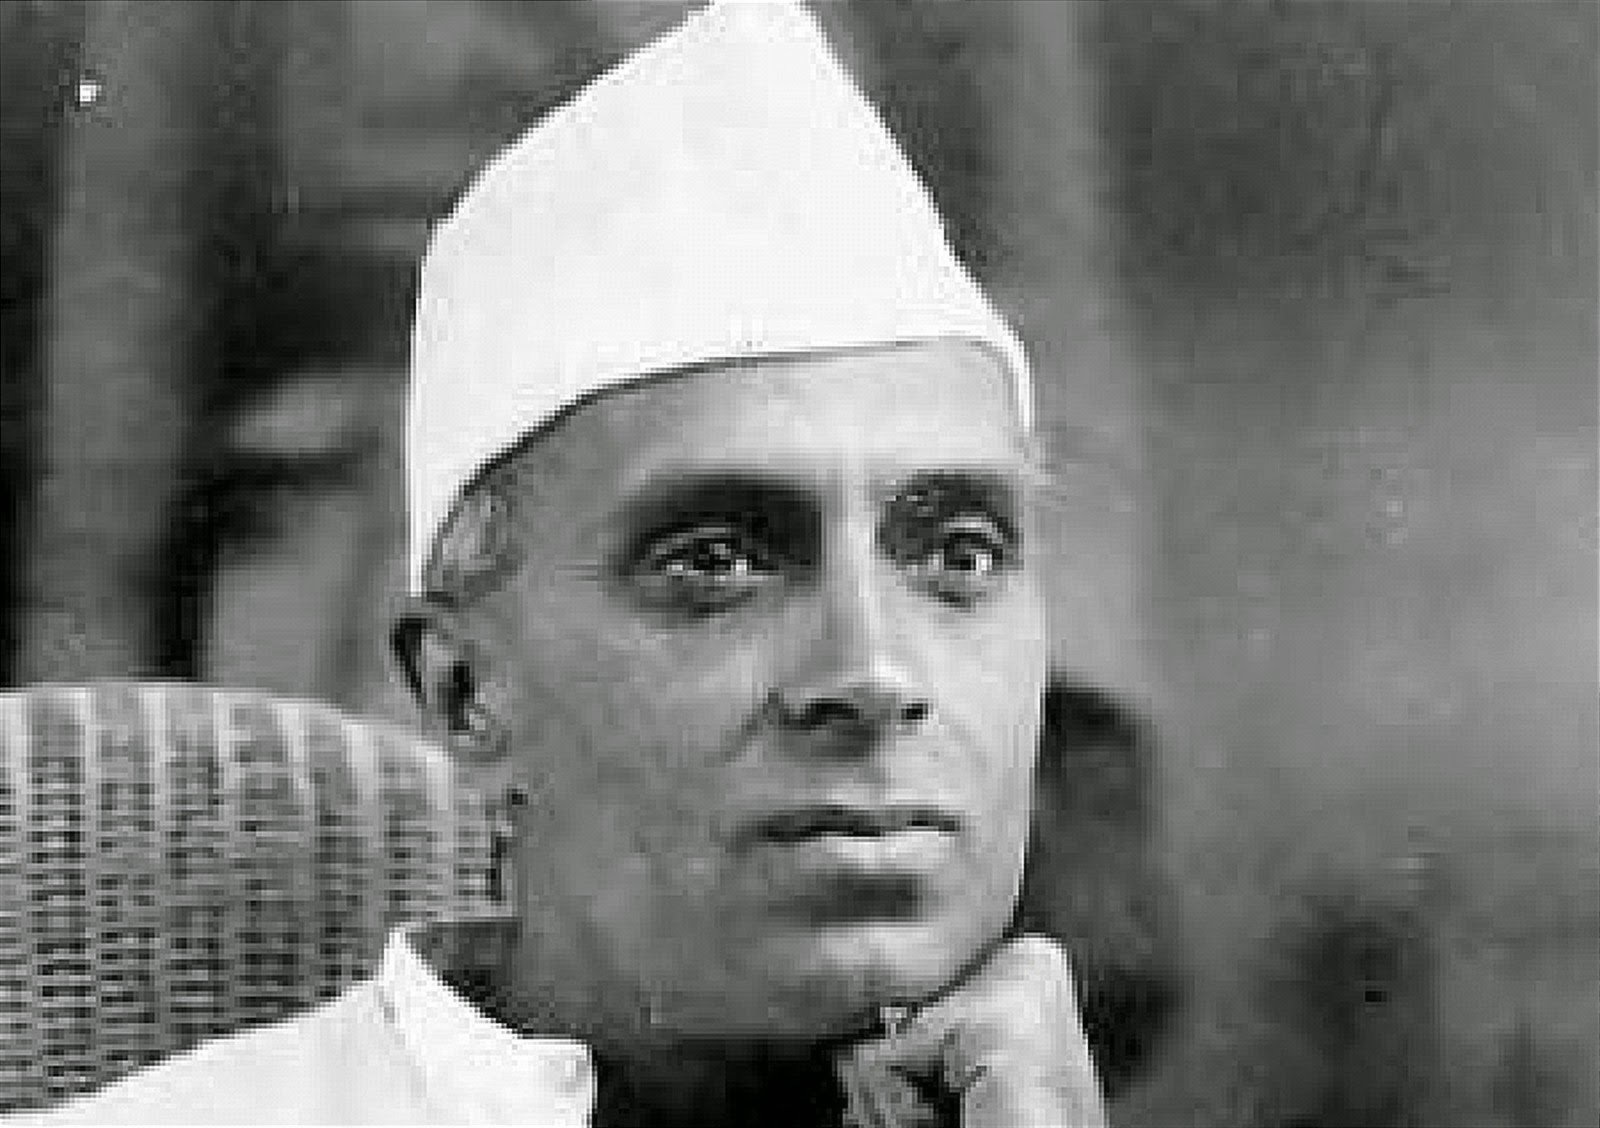 a biography of nehru an indian nationalist leader and the first prime minister of independent india As an indian statesman, nehru was chosen and supported by gandhi to be the first prime minister of independent india though there visions for the future still differed greatly, gandhi had been and was still, nehru's most influential relationship on his path to office.